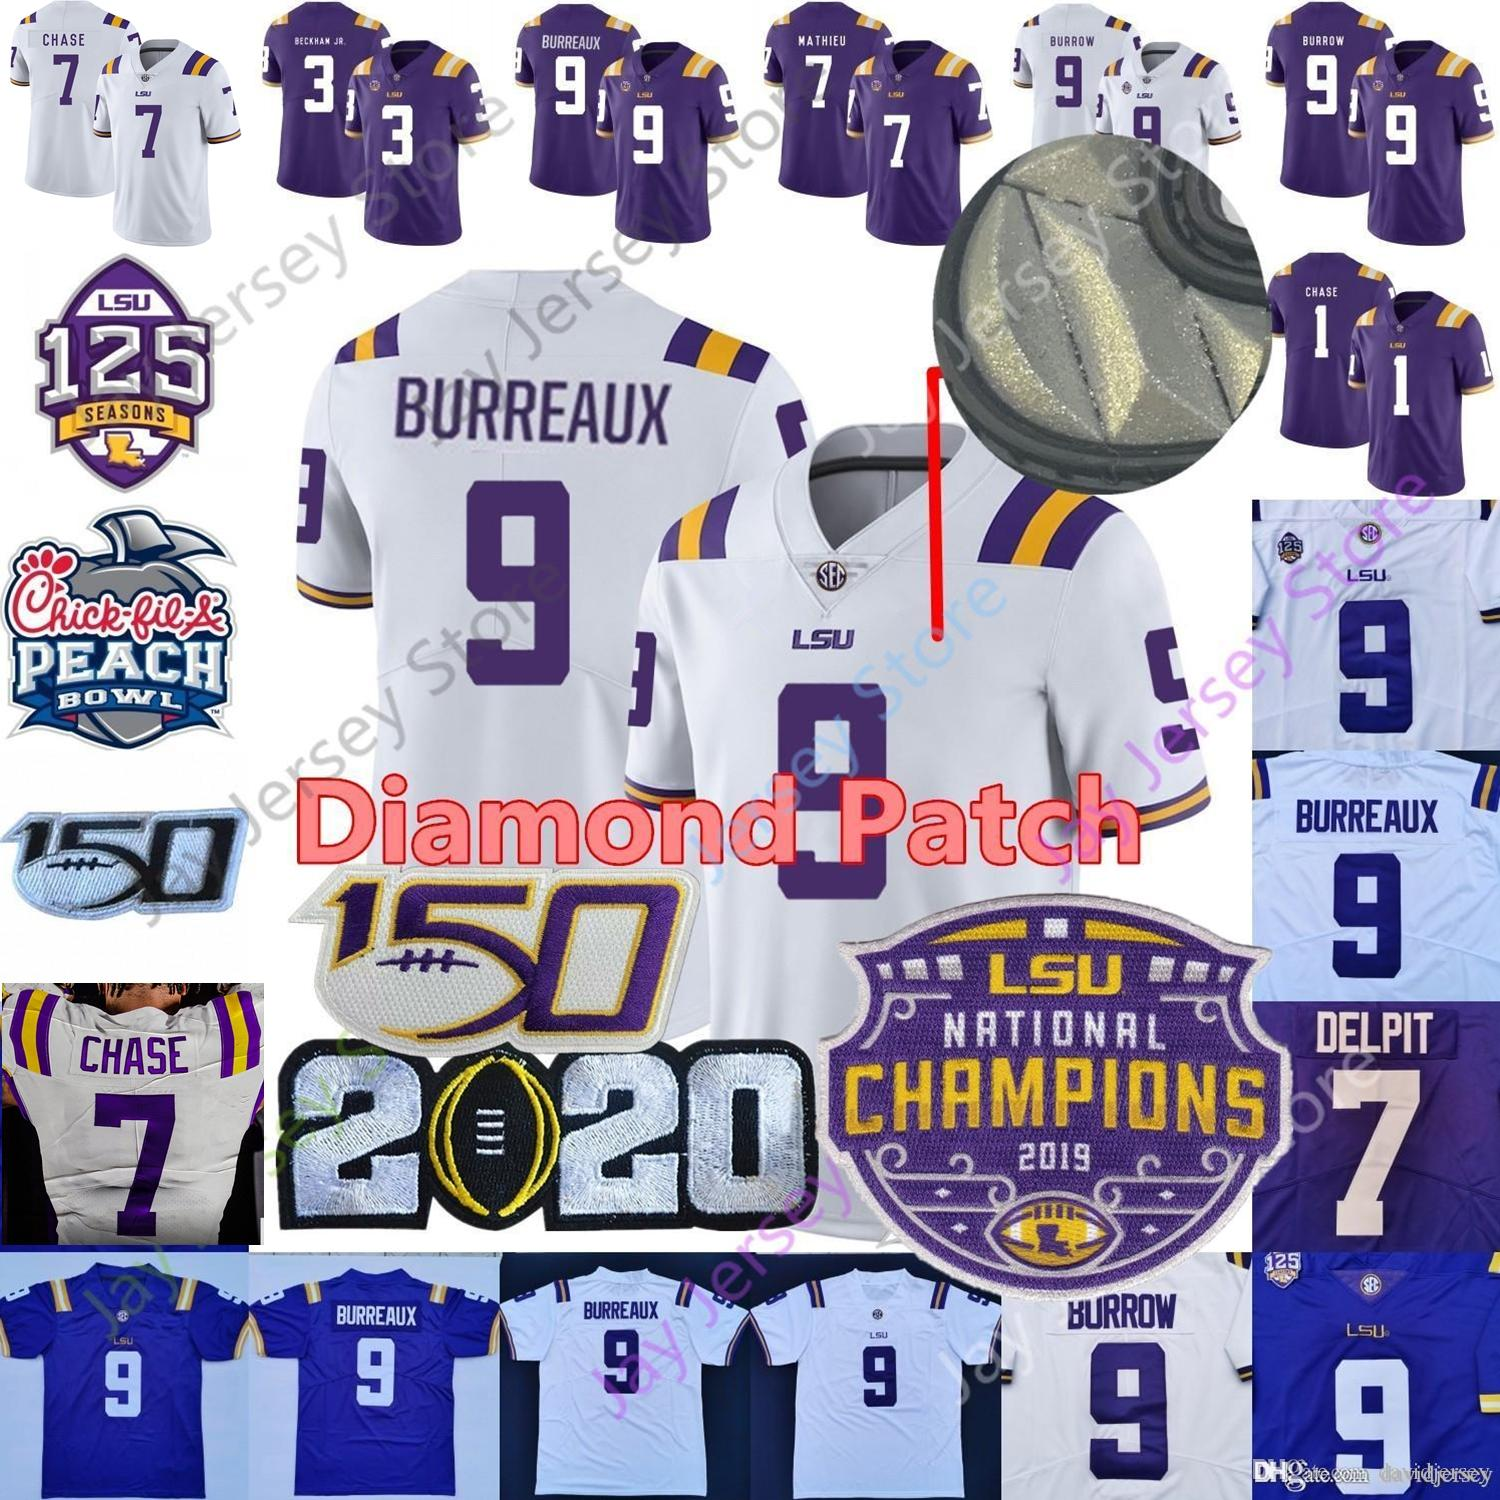 LSU Tigers Burreaux Fußball-Jersey-Diamant-Patch 2020 Champions Playoff College-Joe Burrow 7 Ja'marr Chase Nickname Beckham Delpit Mathieu